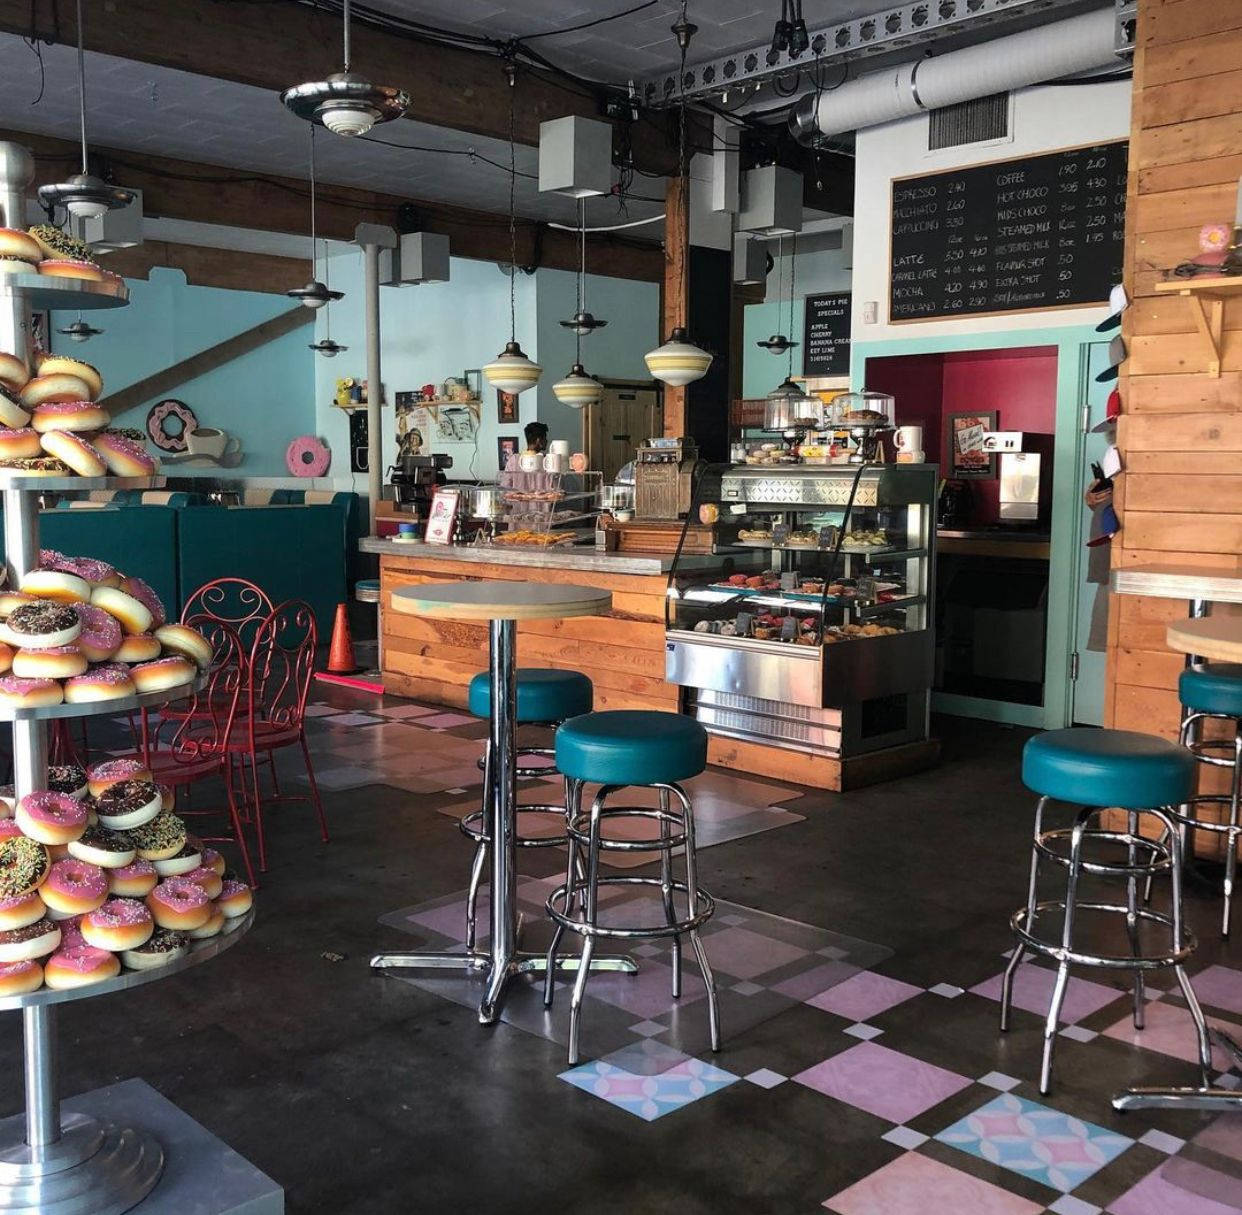 Harvest Cafe on Mill Street has created a new donut to celebrate the Disney film Flora and Ulysses, which was filmed in part at the Chilliwack eatery. (Submitted photo)